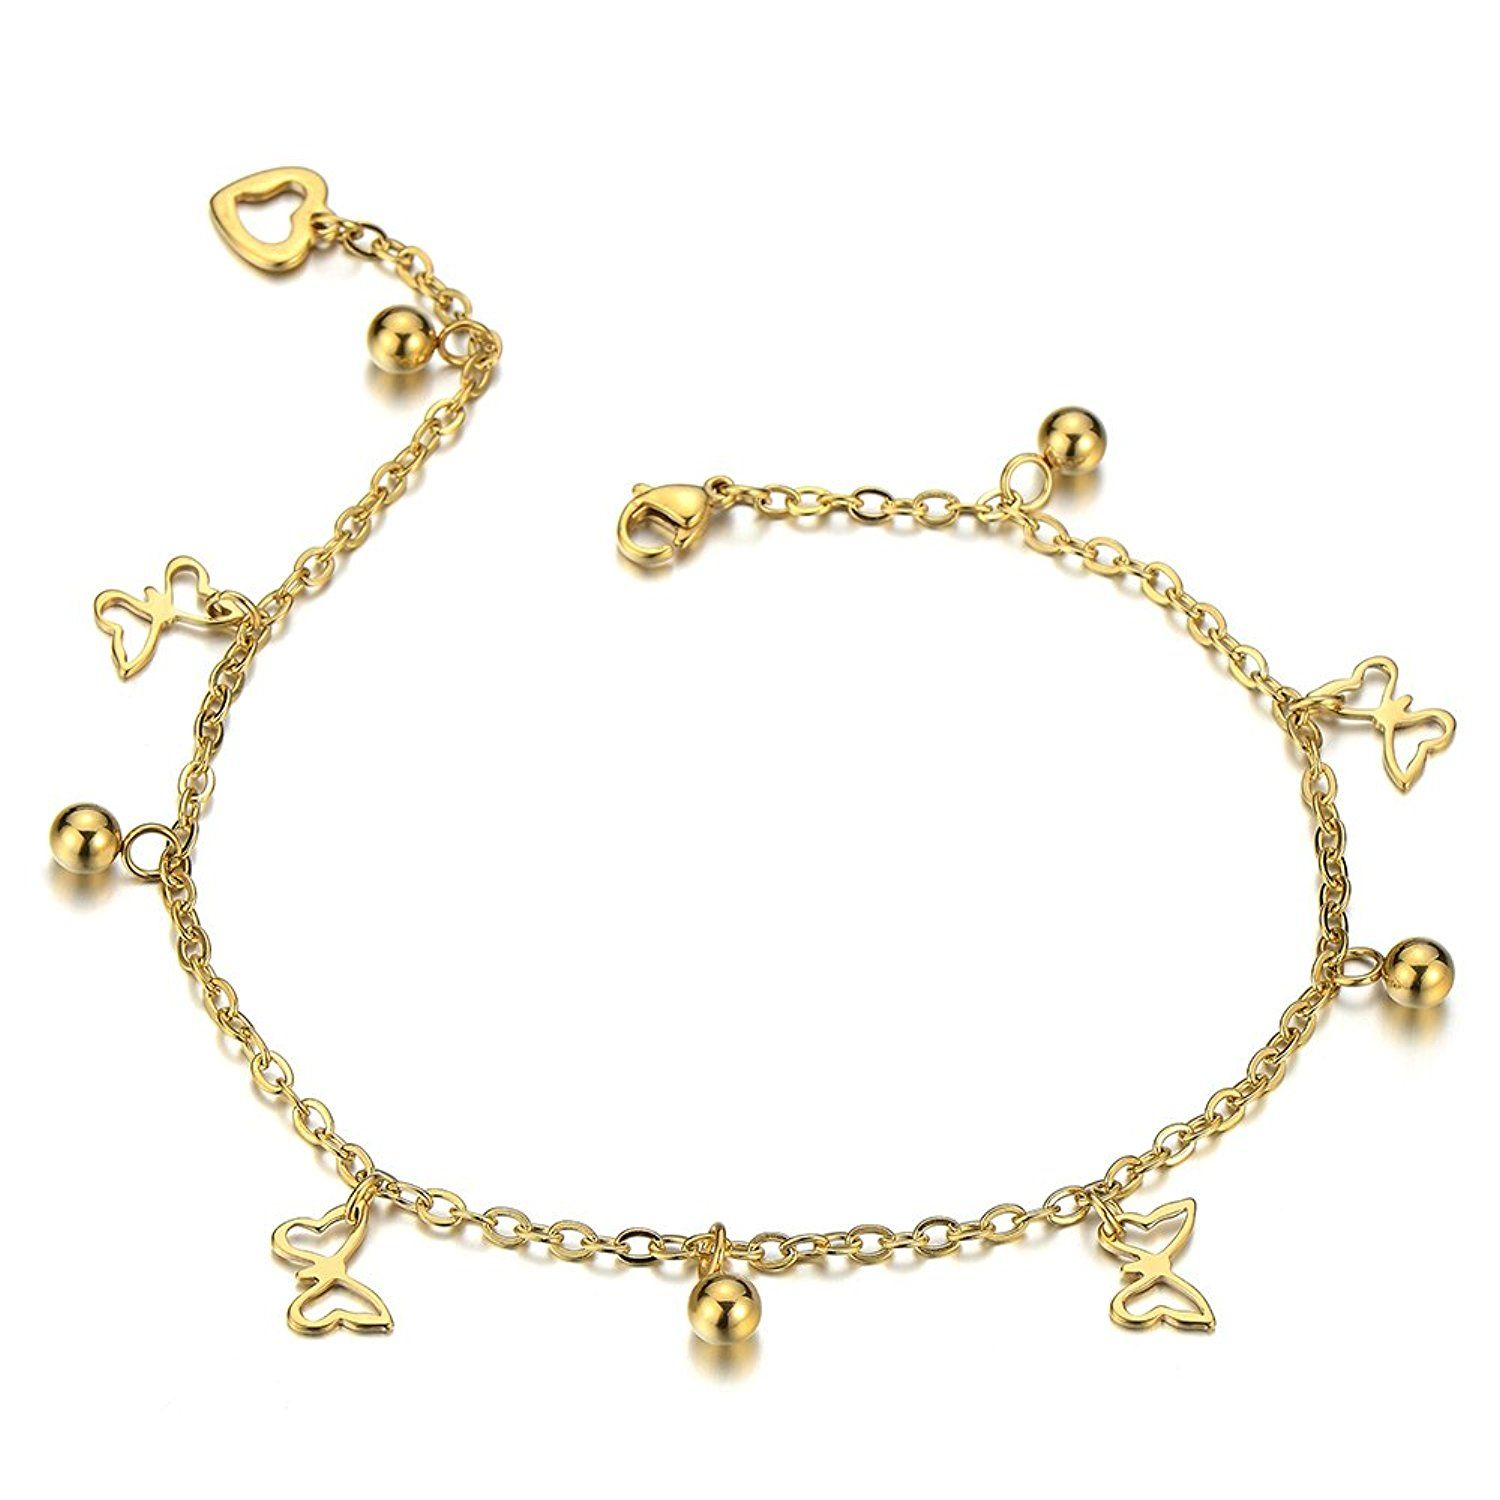 charms dragonfly hollow butterfly with out rose ankle delicated gold women from product anklets barefoot chain anklet layer sandals tone womens jewelry bracelets foot